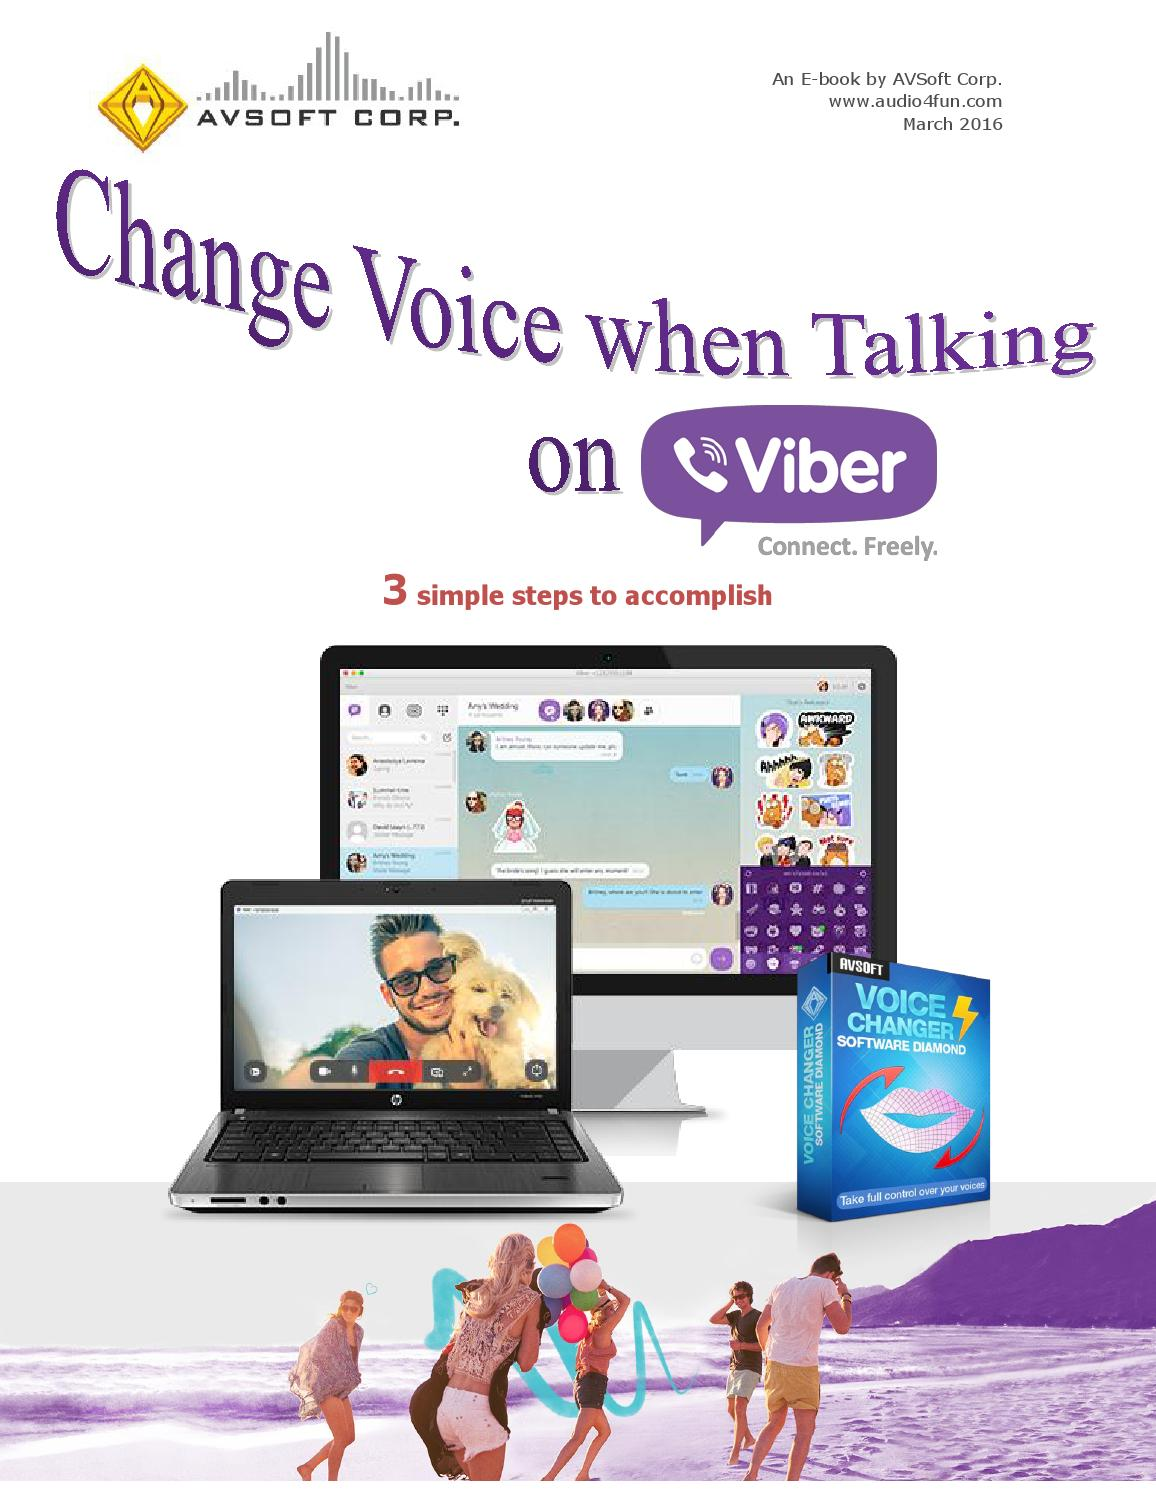 Change Voice when Talking on Viber by Audio4fun - issuu